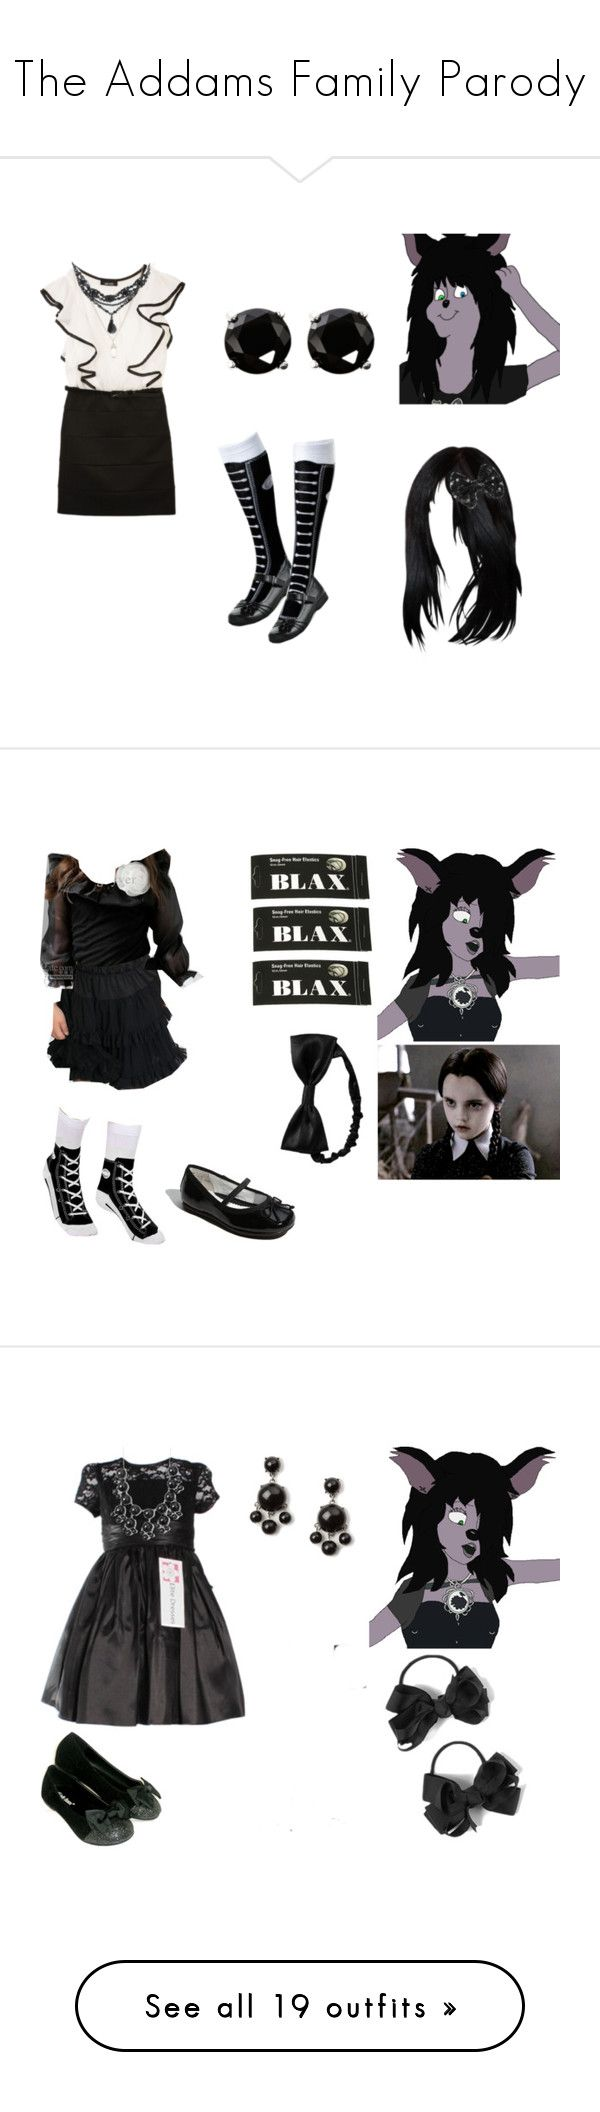 """The Addams Family Parody"" by brainyxbat ❤ liked on Polyvore featuring Amy Byer, Coast, claire's, Sonoma life + style, Disney, Nordstrom, Gap, Blax, Converse and American Apparel"